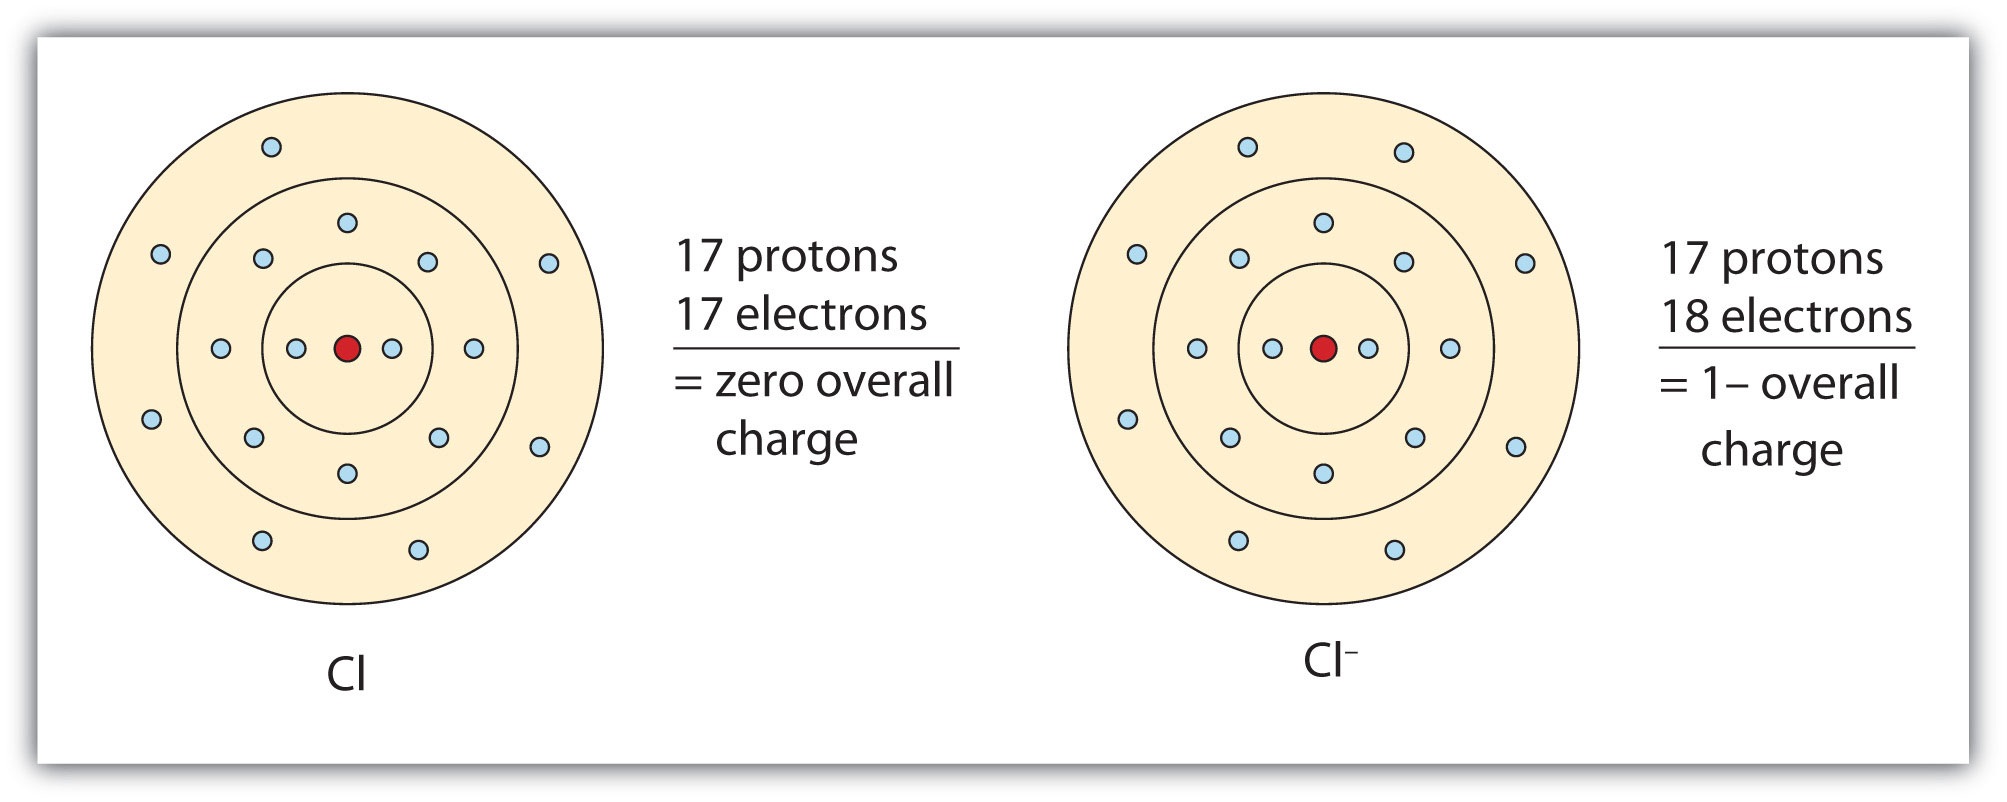 Ch105 chapter 3 ionic and covelent bonding chemistry pooptronica Images